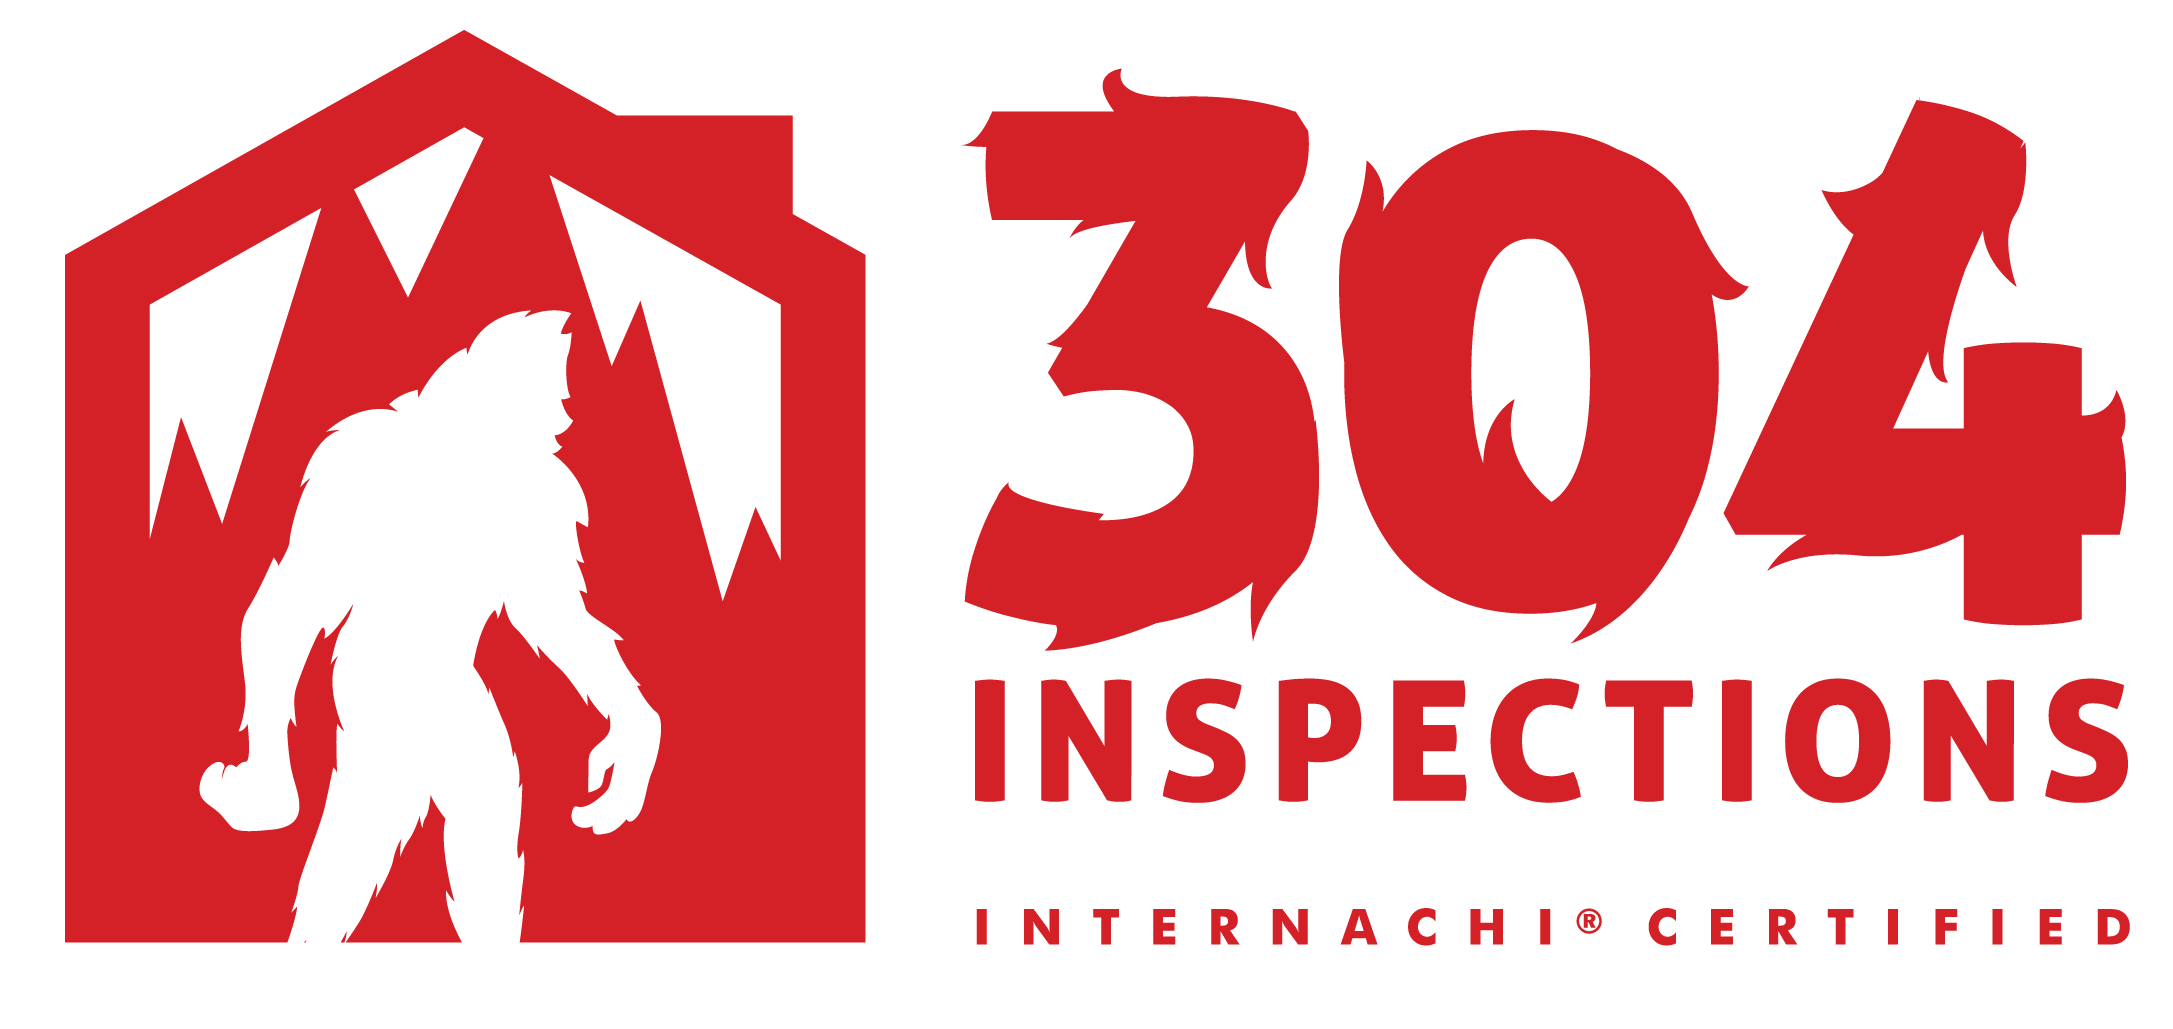 304 Inspections